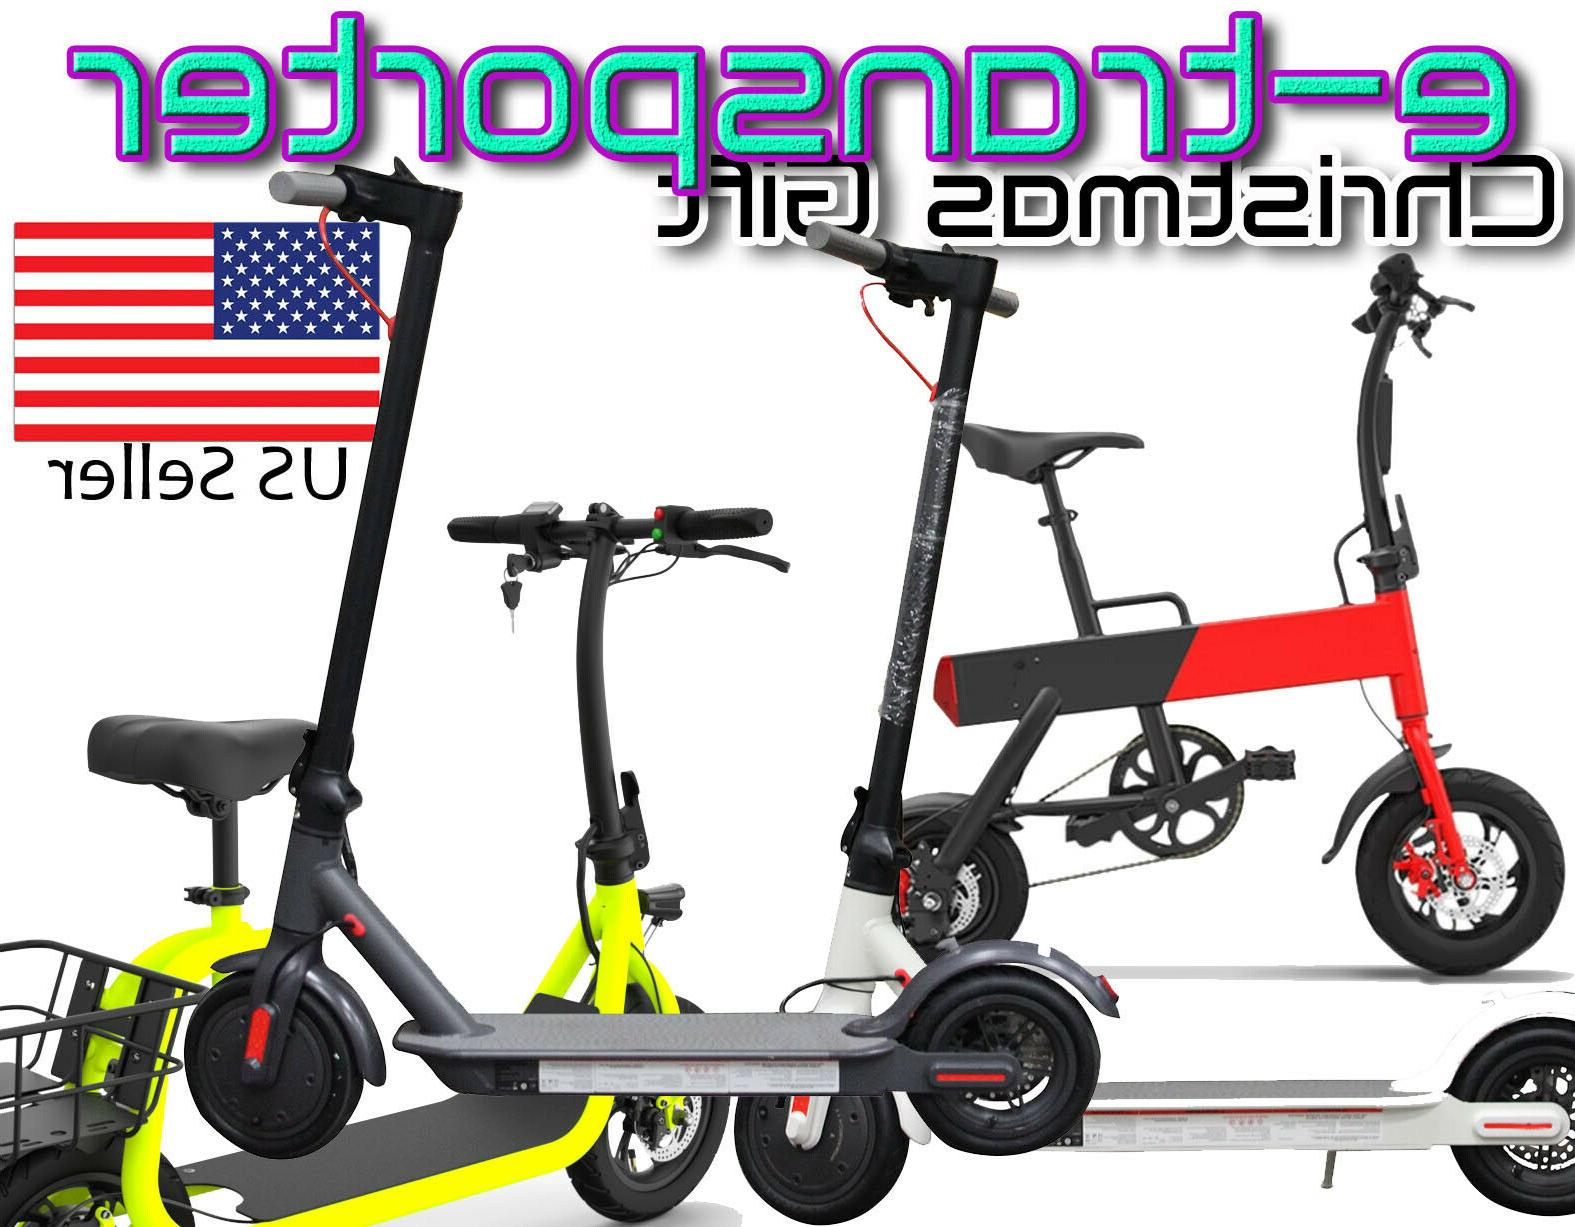 pedals power assist 48x26 10mph foldable electric